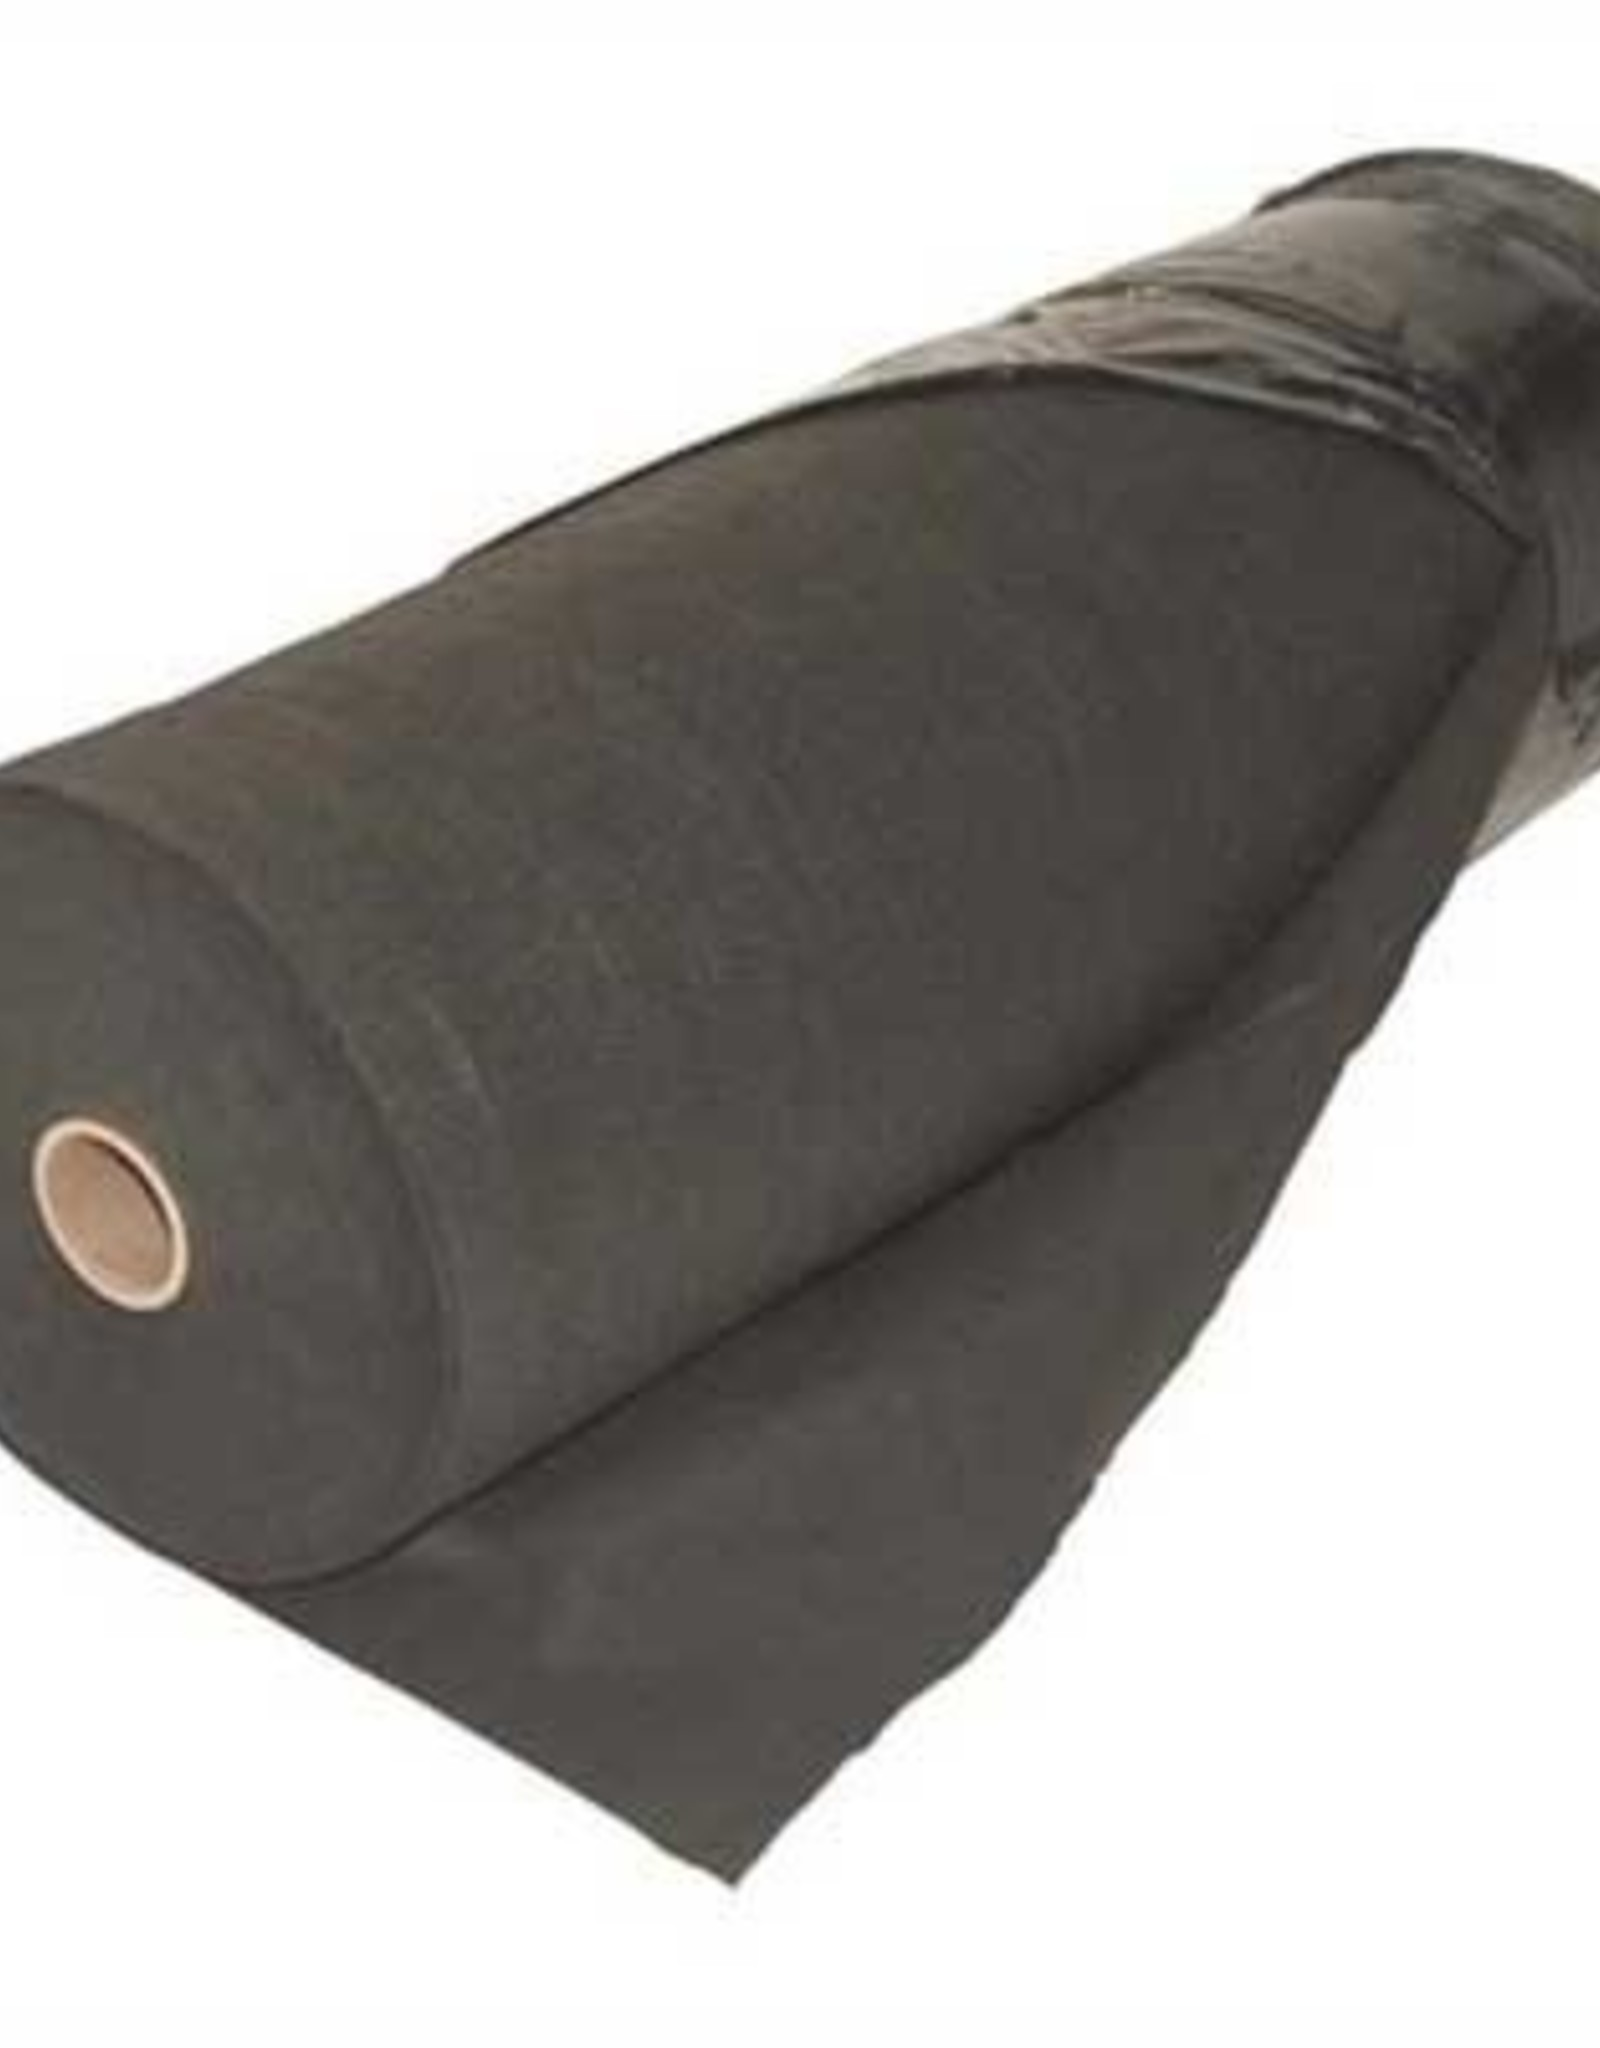 Non-Woven Geotextile Fabrics, Various Strengths & Sizes